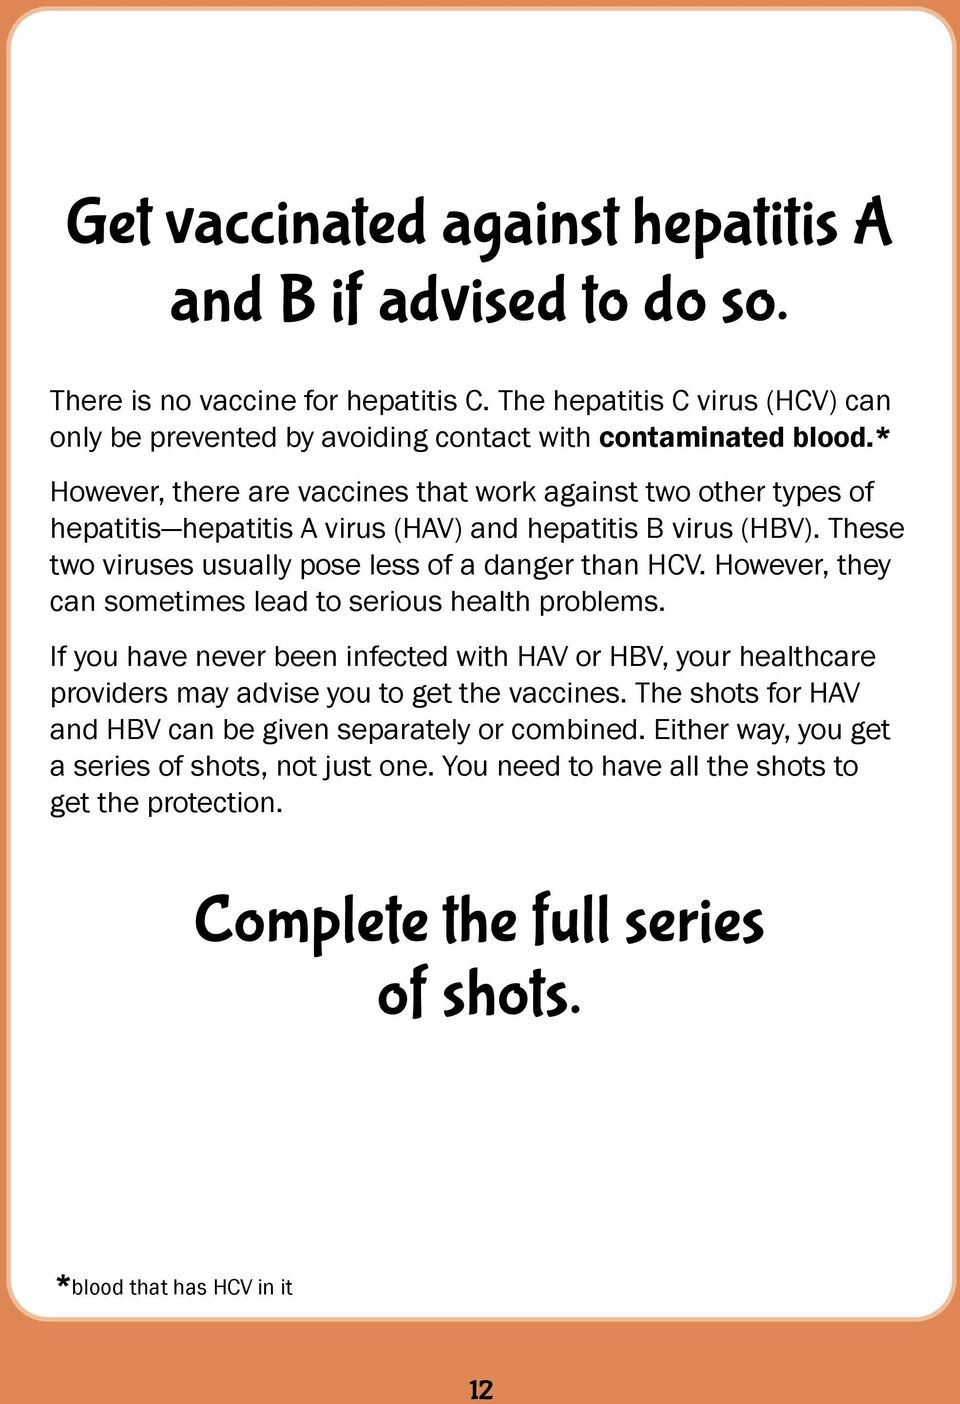 However, they can sometimes lead to serious health problems. If you have never been infected with HAV or HBV, your healthcare providers may advise you to get the vaccines.